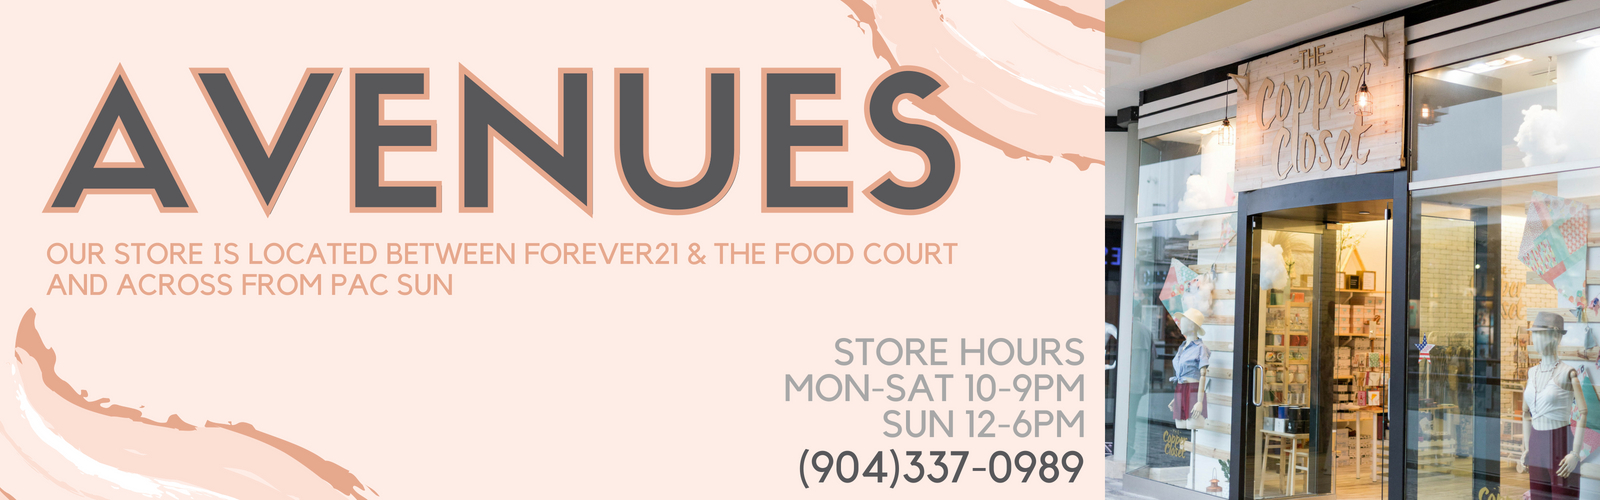 Avenues. Our store is located between Forever 21 & The food court and across from pac sun. Store hours are Monday through Saturday from 10am to 9pm and Sunday from noon to 6pm. Our avenues location can be reached at 904-337-0989.